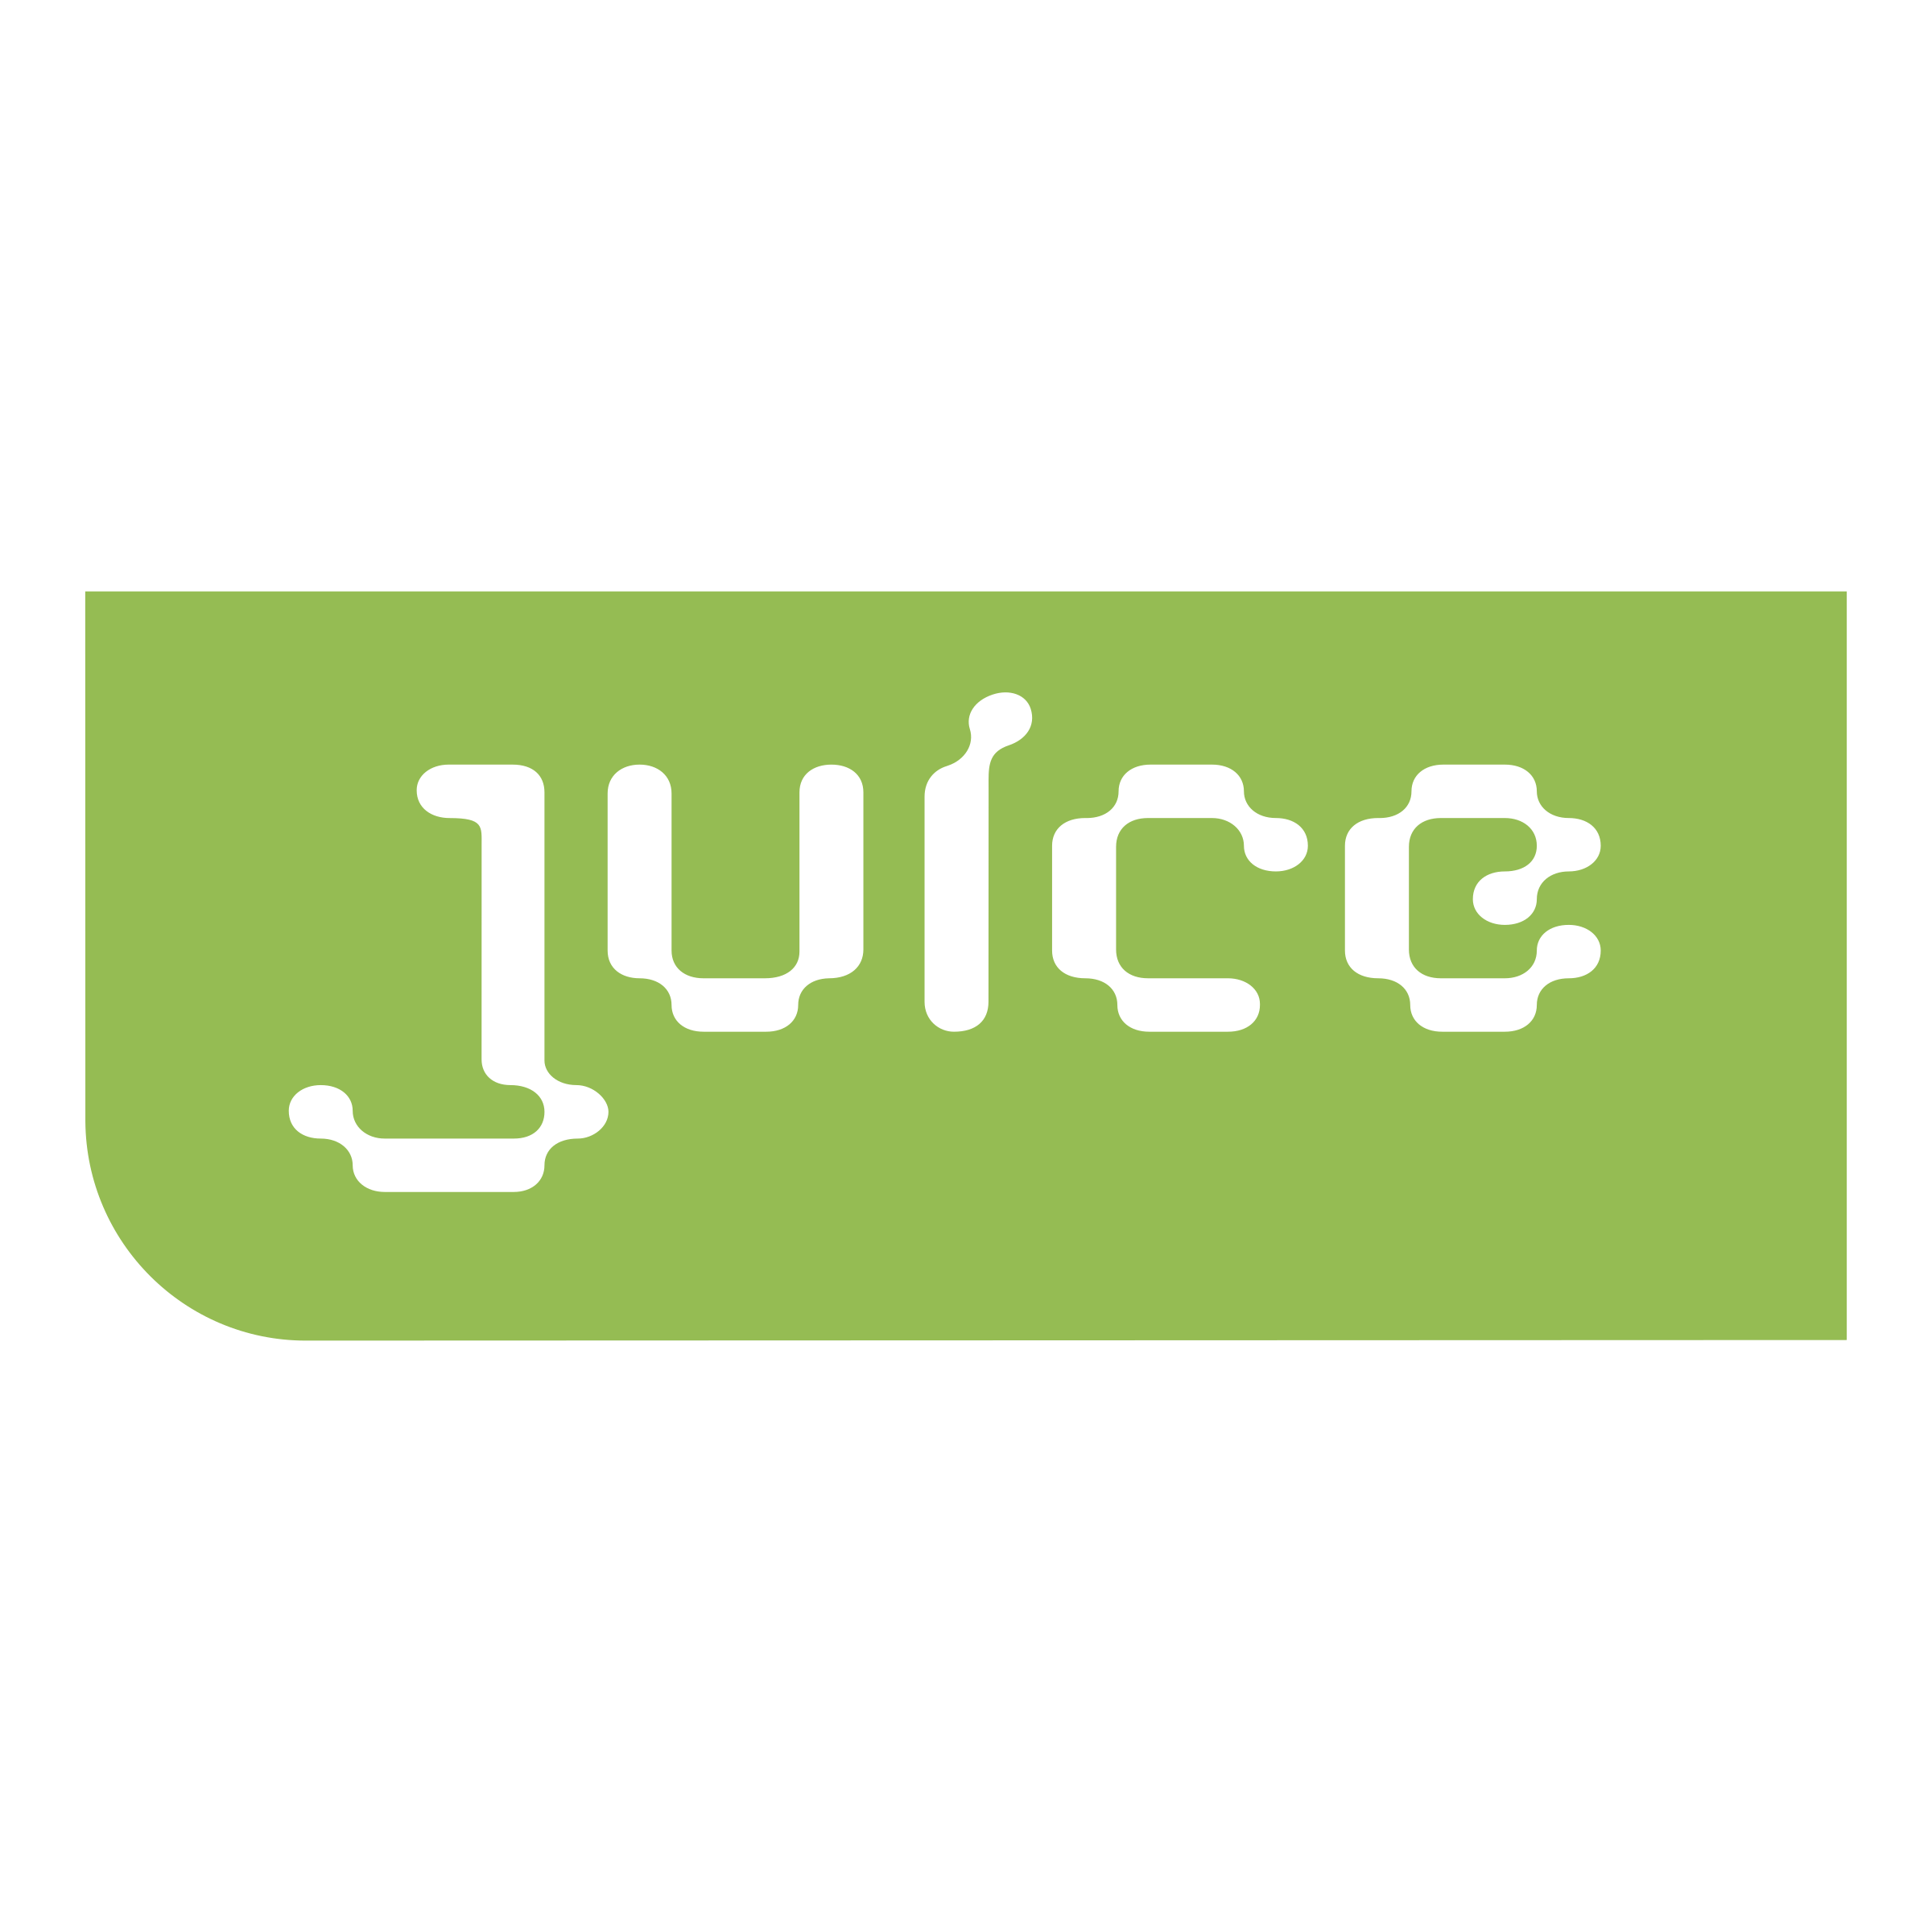 juice logo png transparent svg vector freebie supply juice logo png transparent svg vector